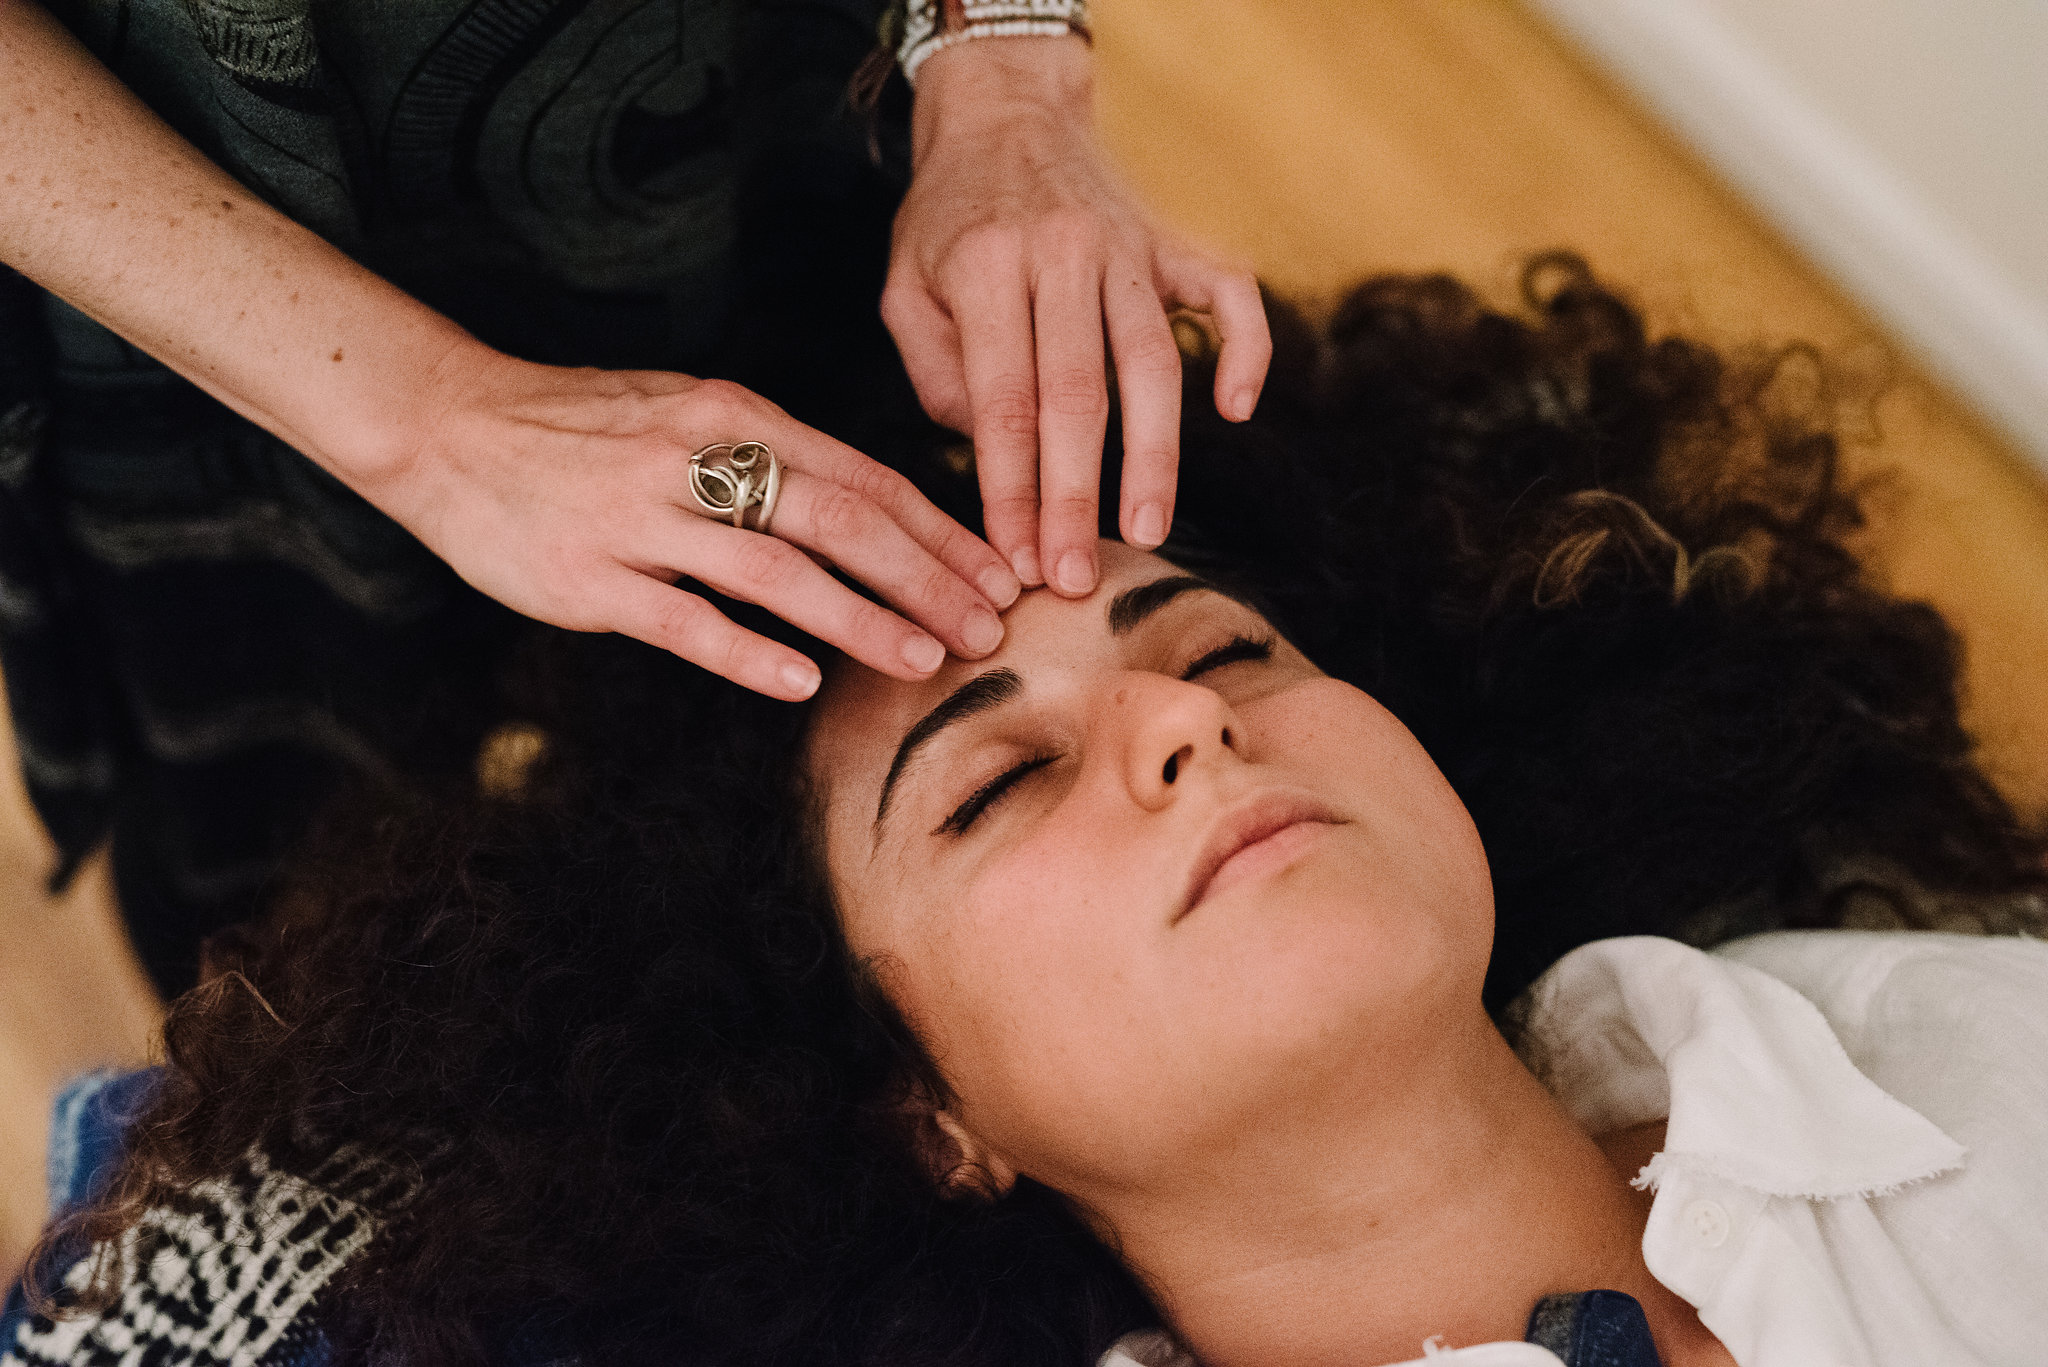 services offered - SHAMANIC REIKIACUPRESSURECUPPINGMOXAAcupressure and cupping may be combined with Shamanic Reiki for further integration of body and spirit. Life coaching and plant medicine integration are available upon request.